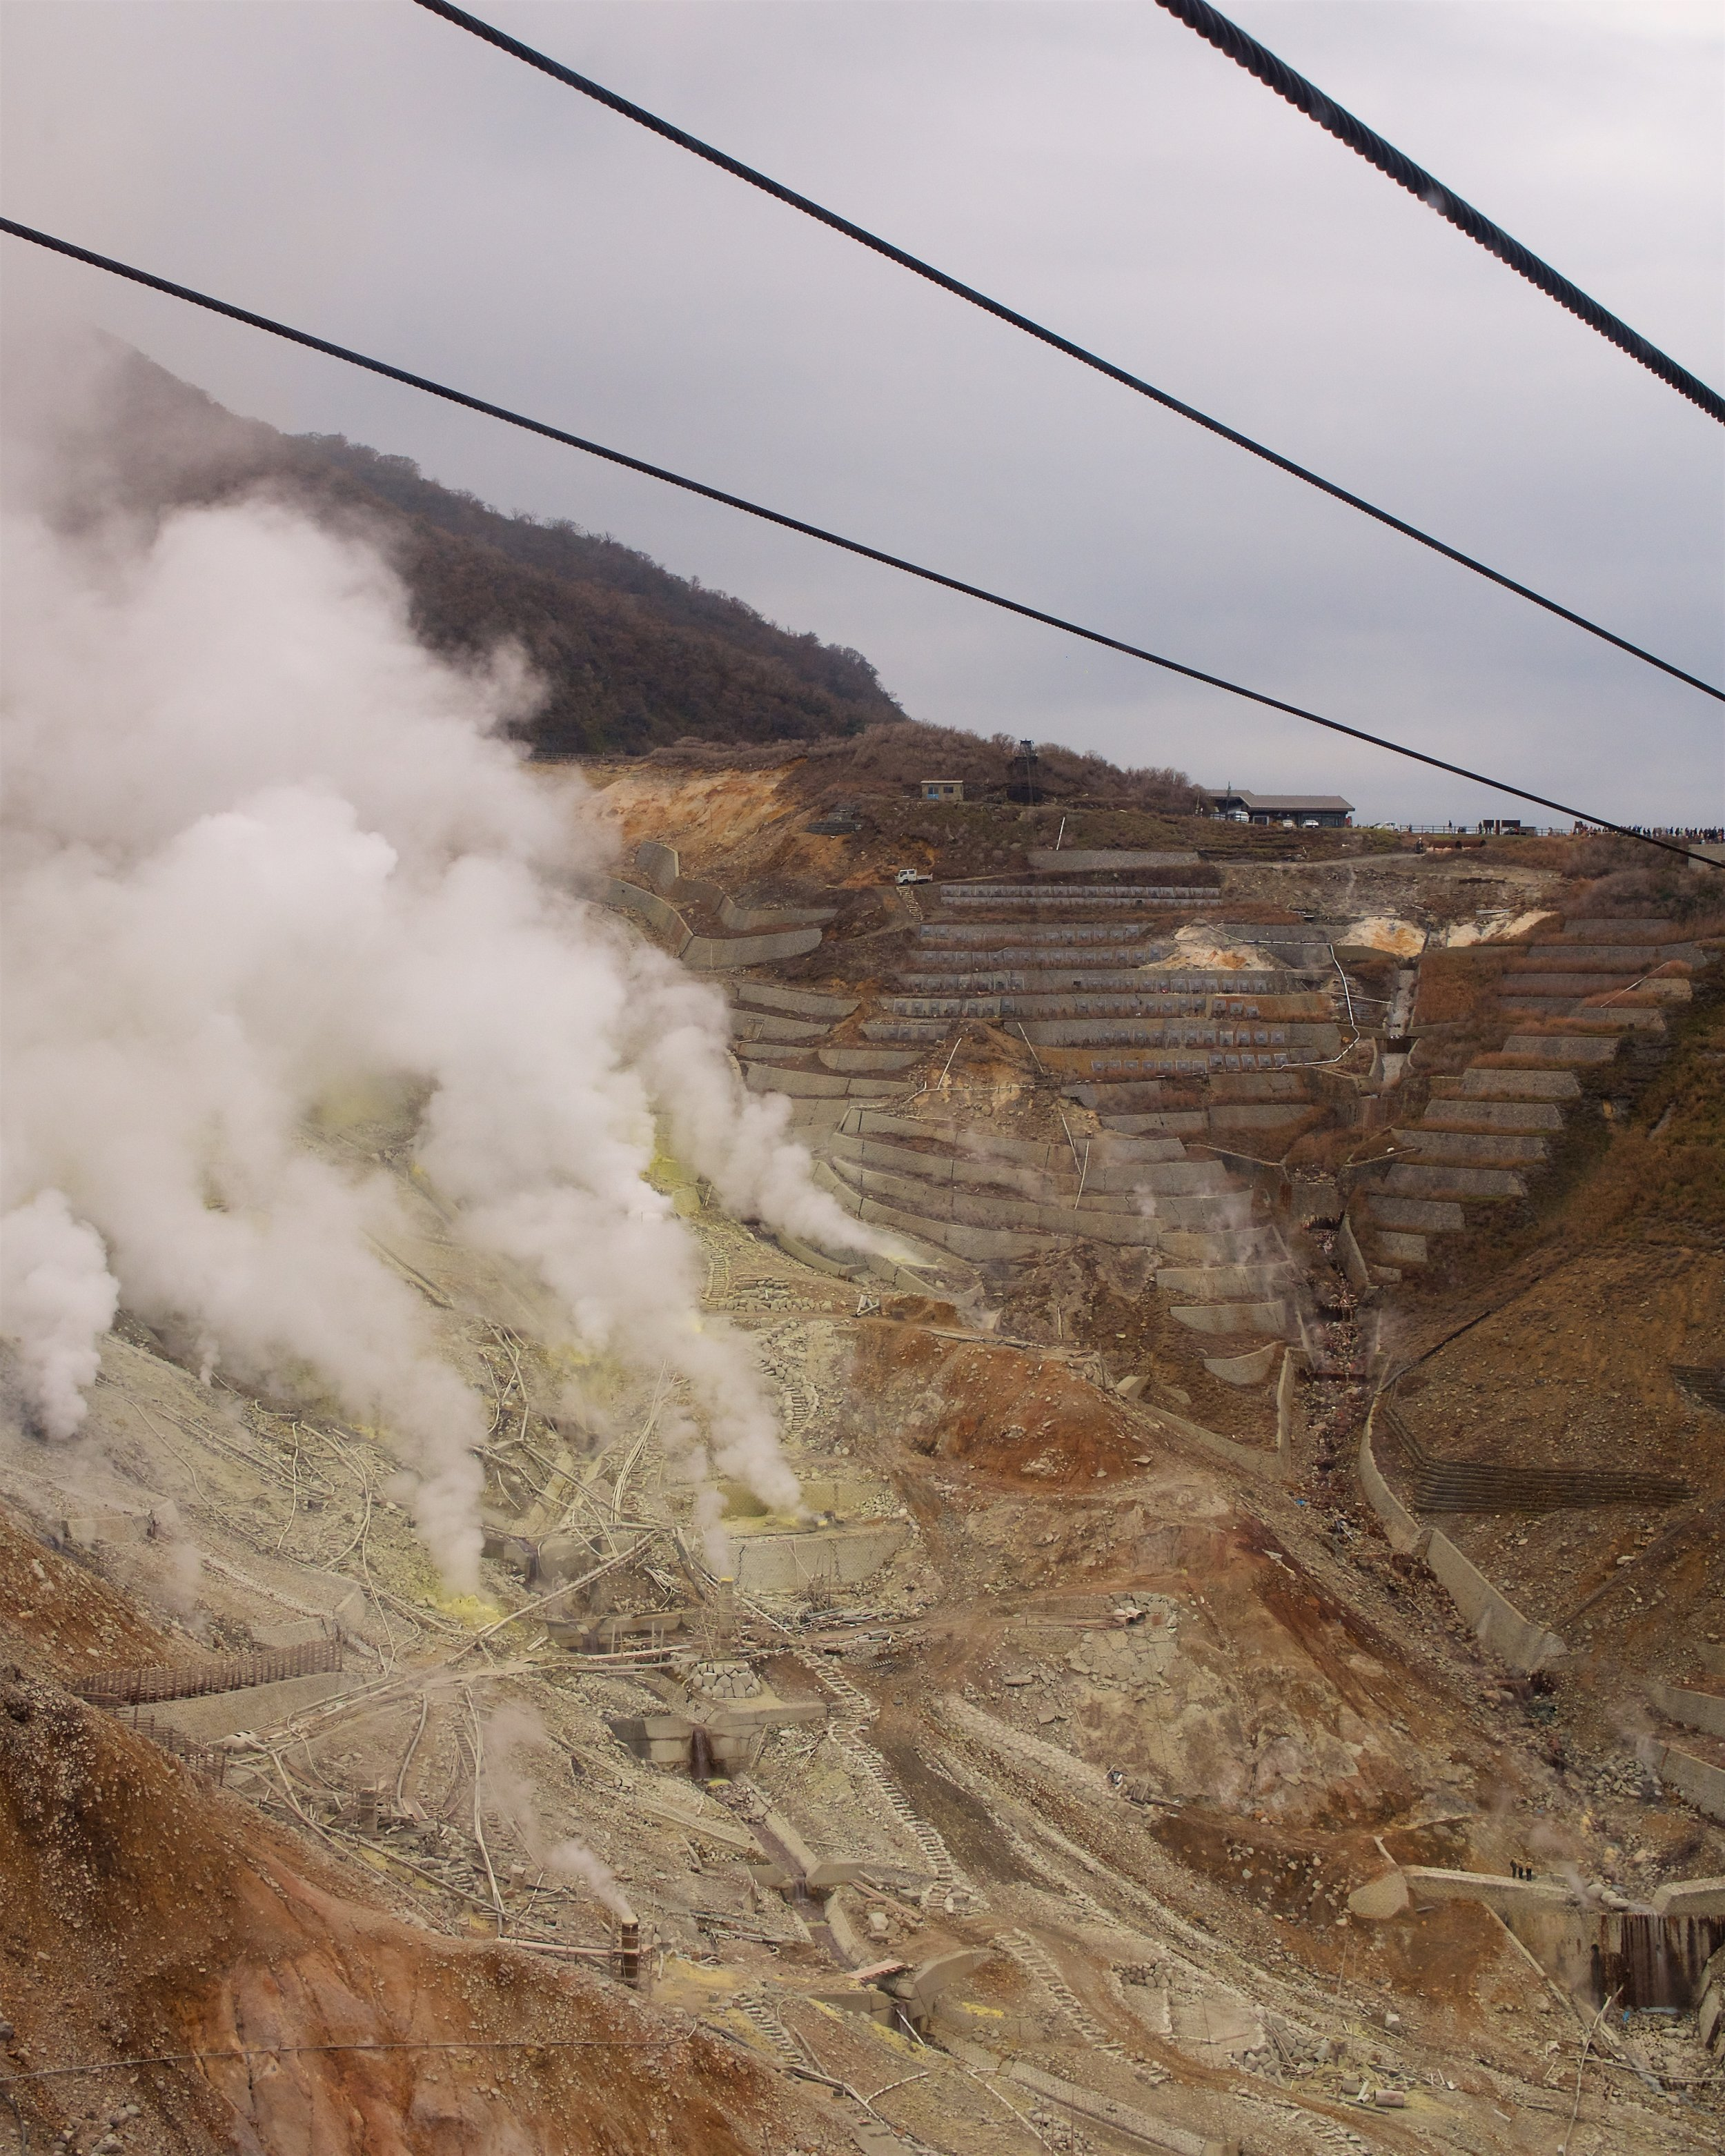 Sulfur gasses being pumped from Owakudani